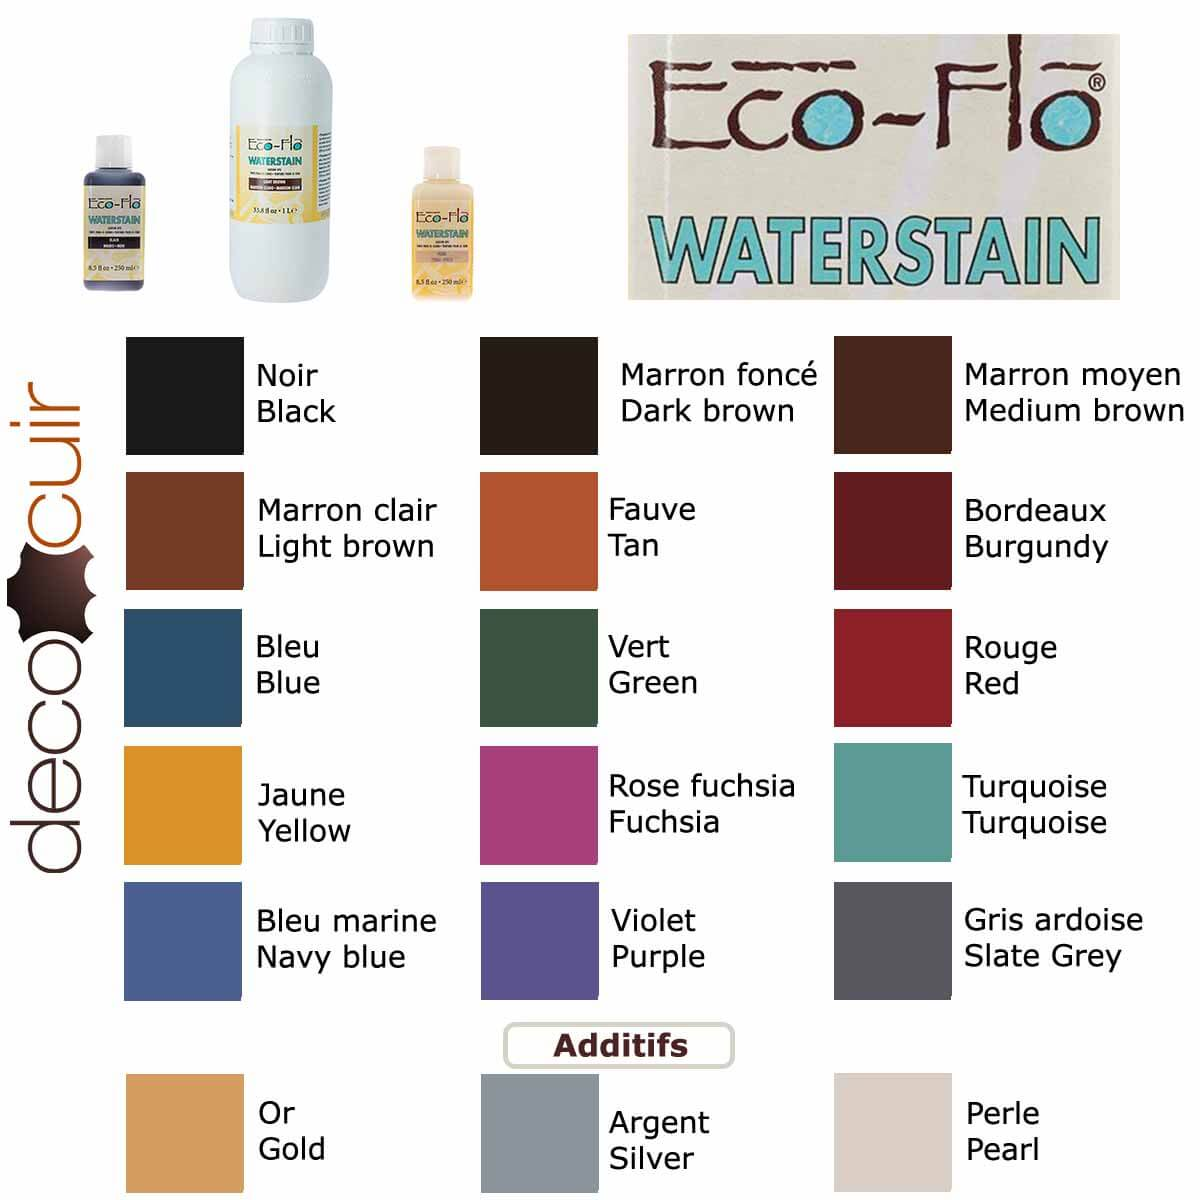 Additif pour teinture ECO-FLO WATERSTAIN - ARGENT / SILVER - 250ml